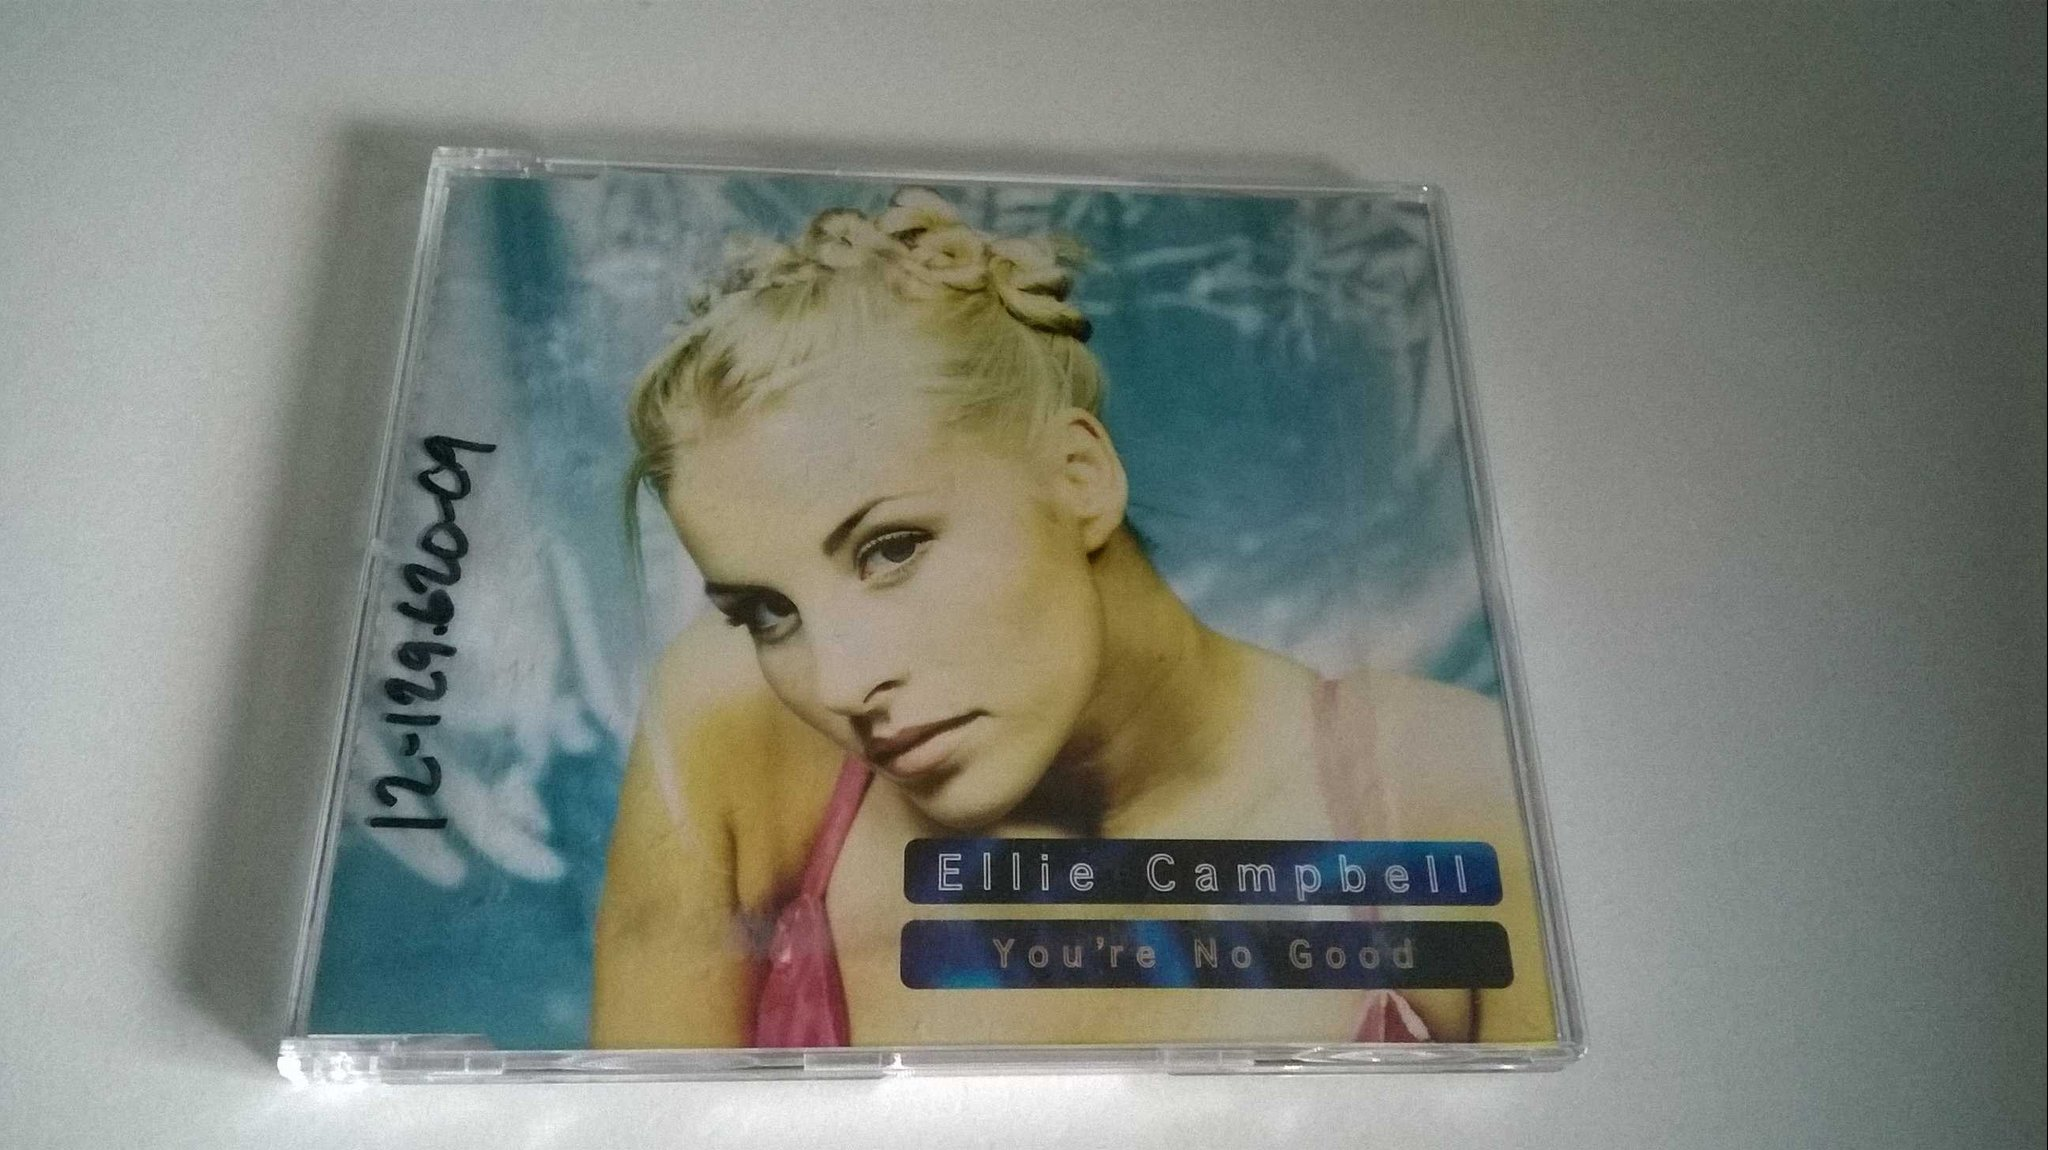 Ellie Campbell - You're No Good, CD